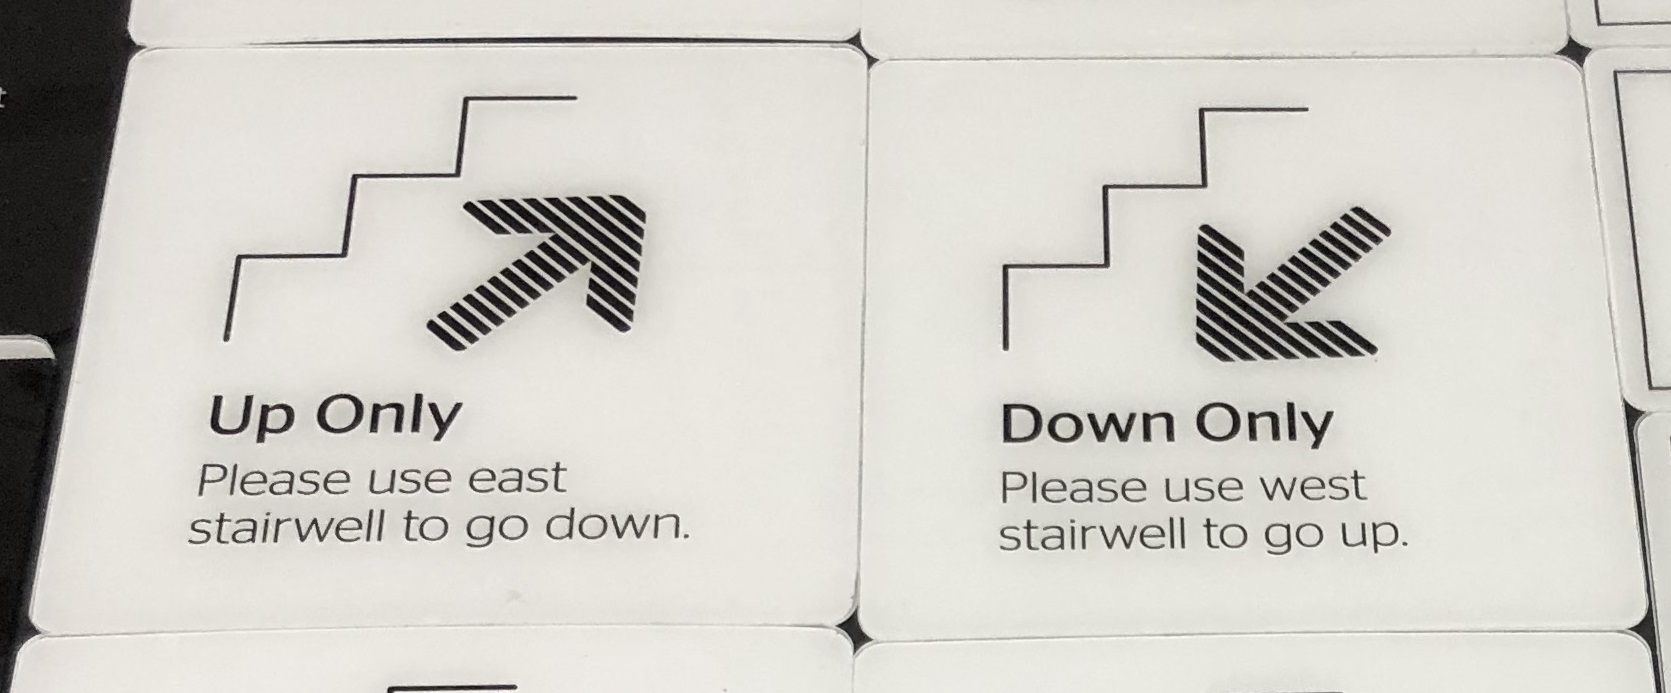 More folks will be taking the stairs to stay safe. Install stairwell signs to help with the flow of traffic while reducing the risk of transmission.